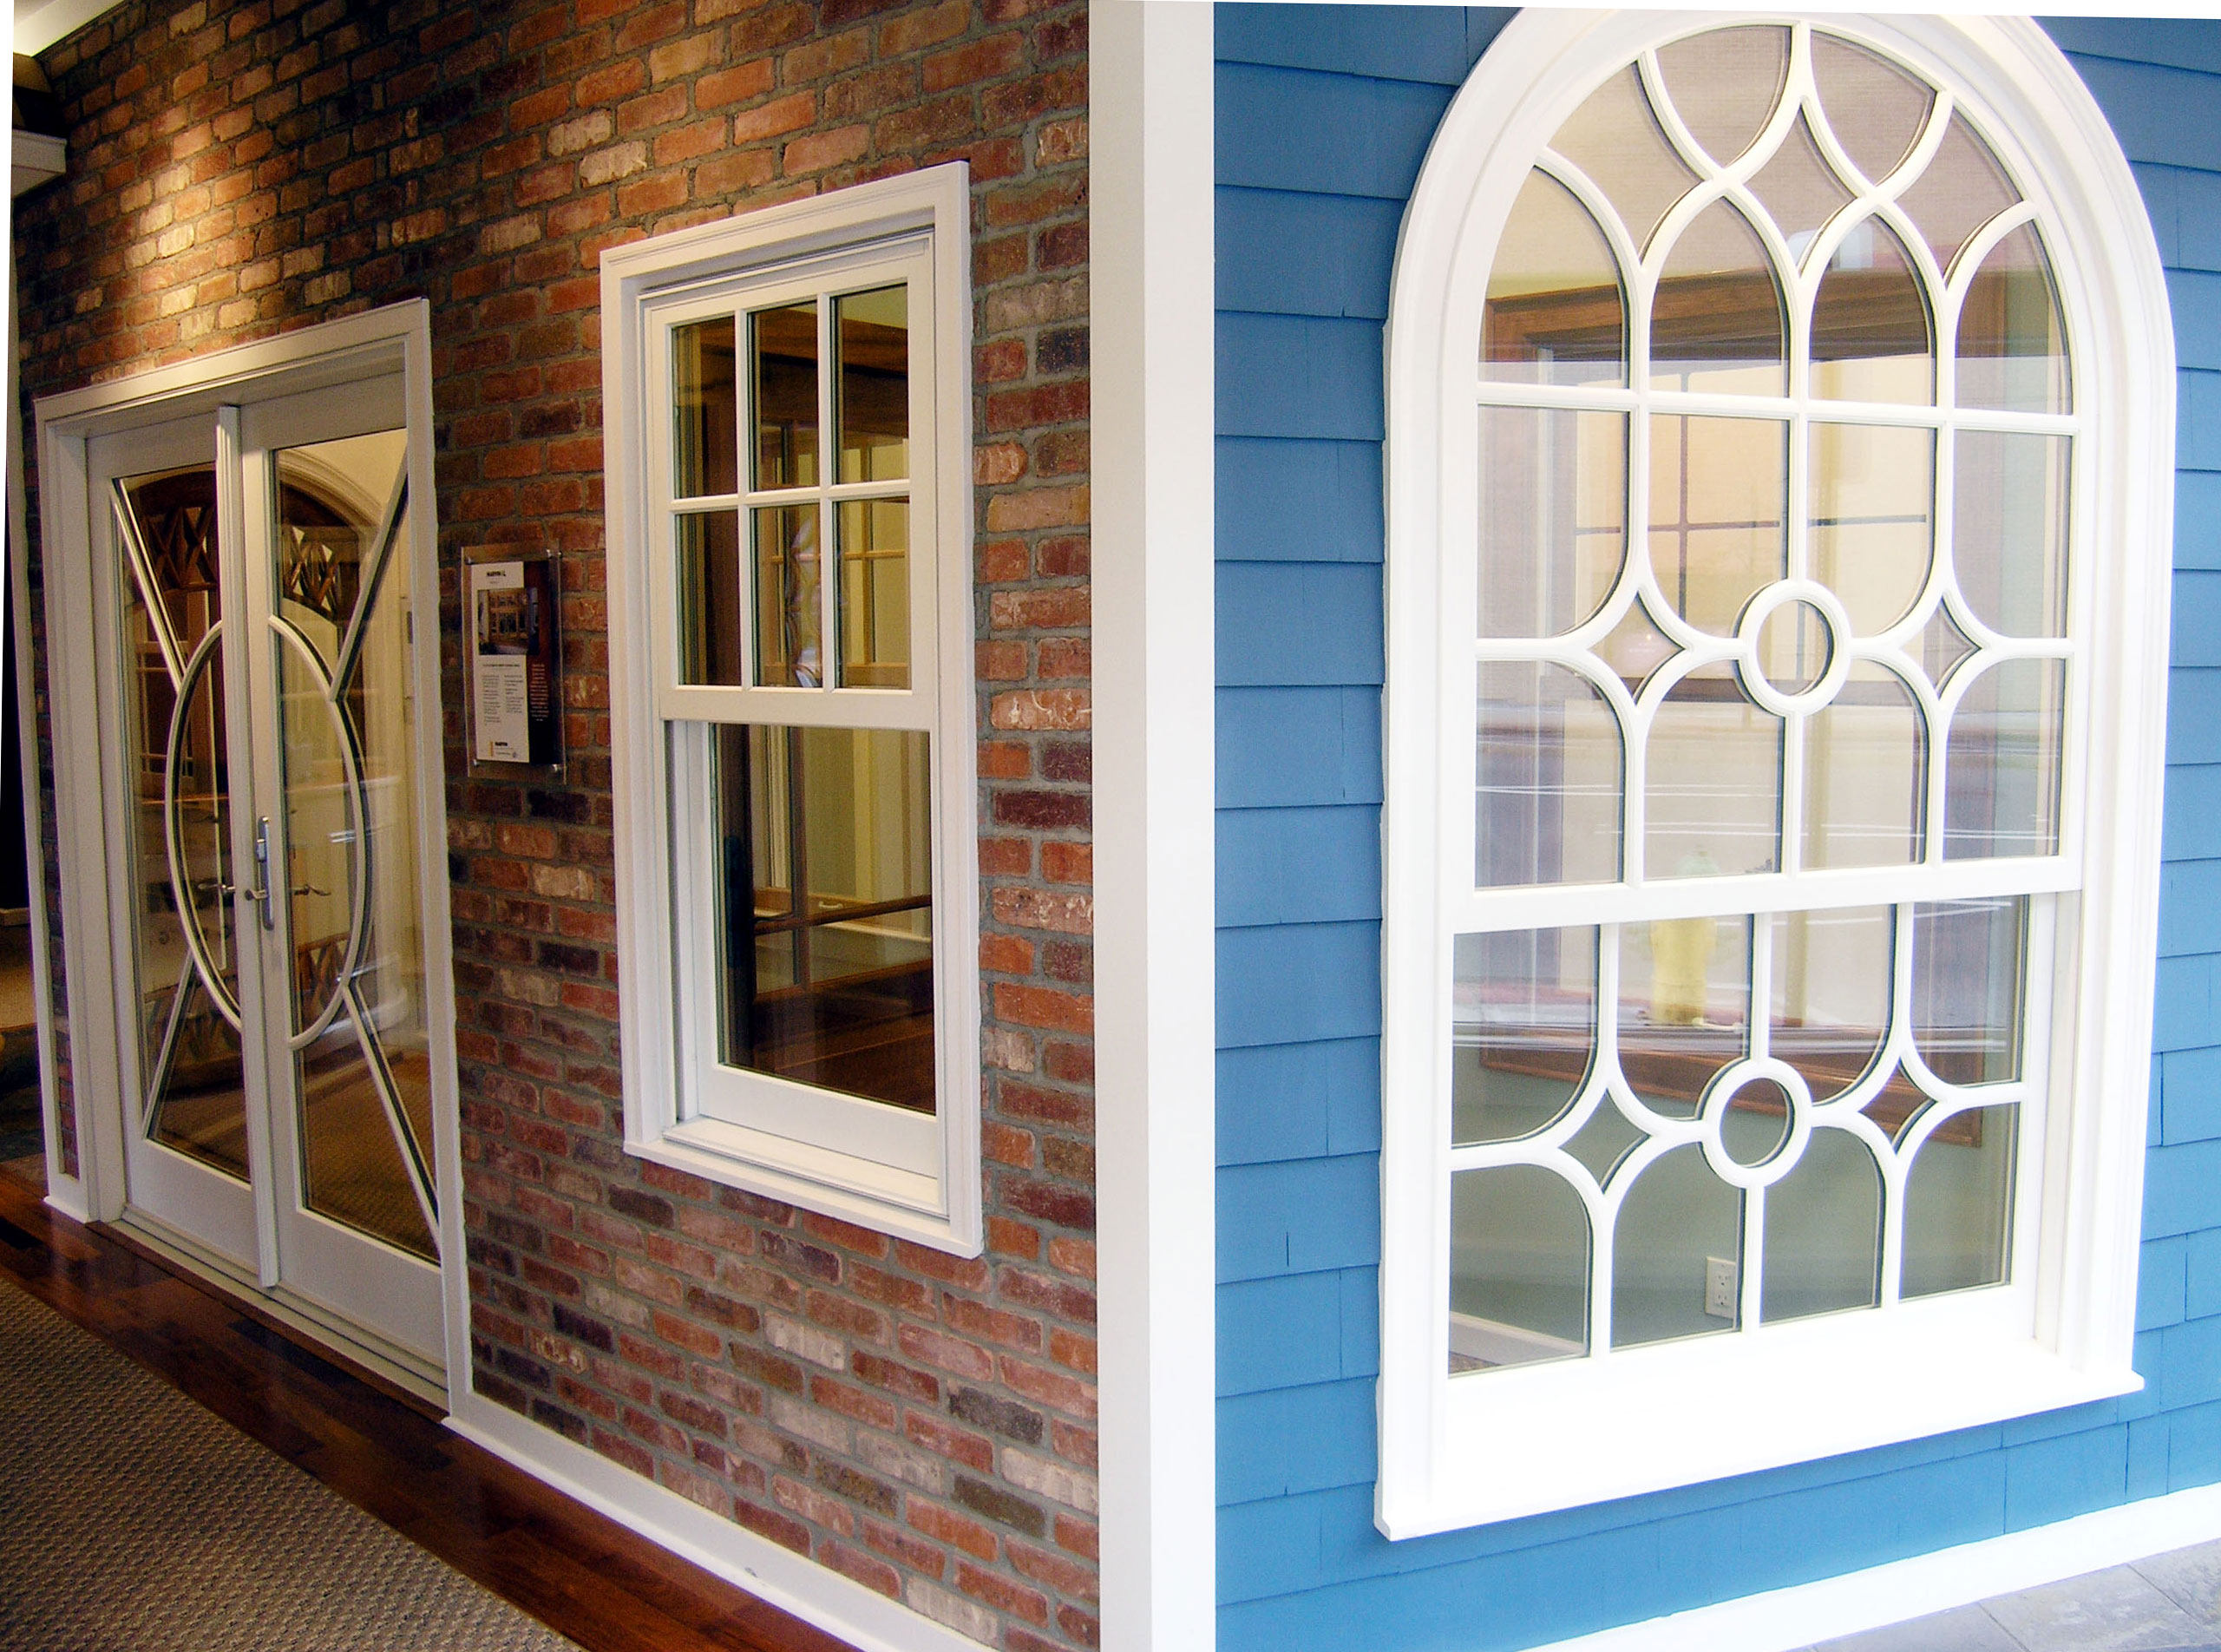 About us elmsford ny authentic window design for Door n window designs